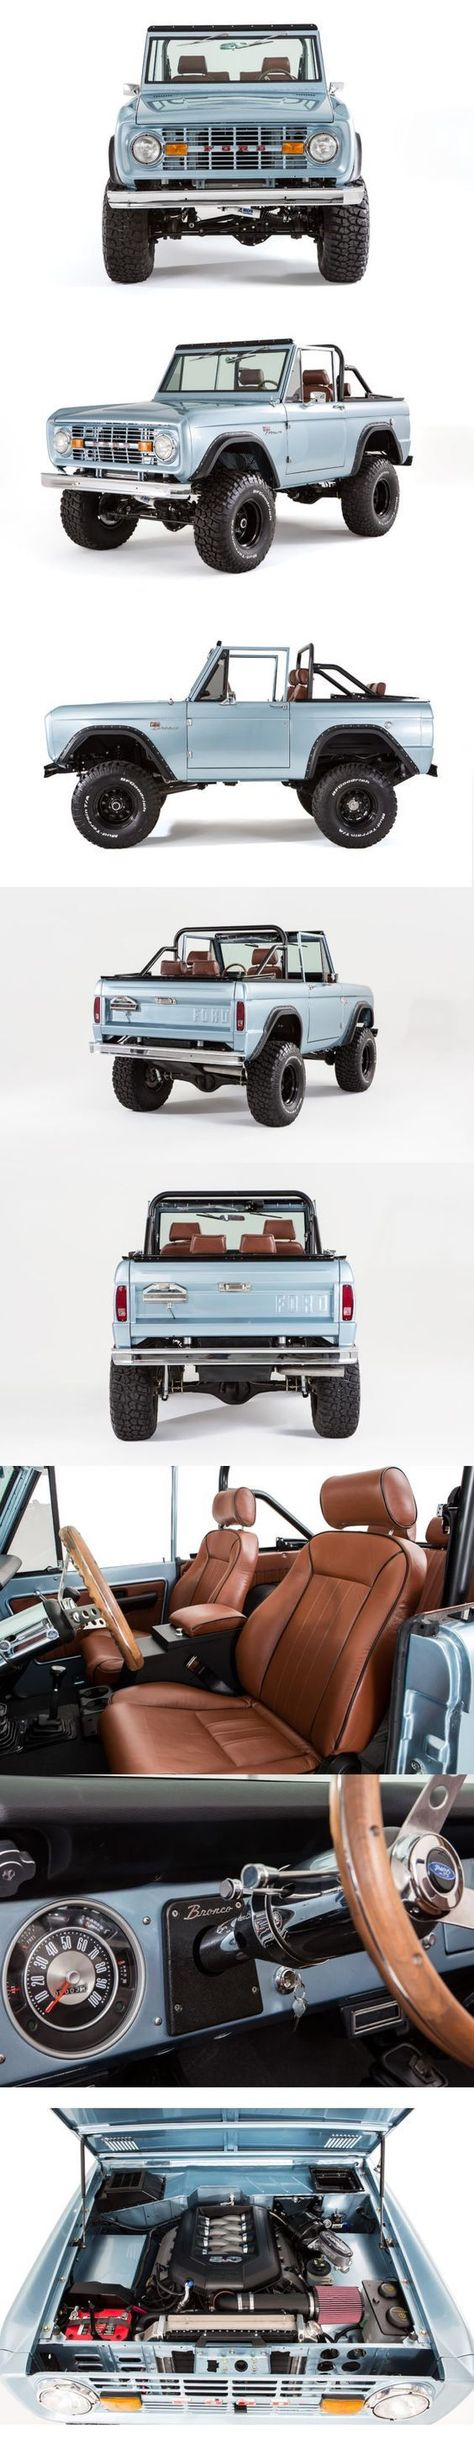 1974 Ford Bronco #ford #truck